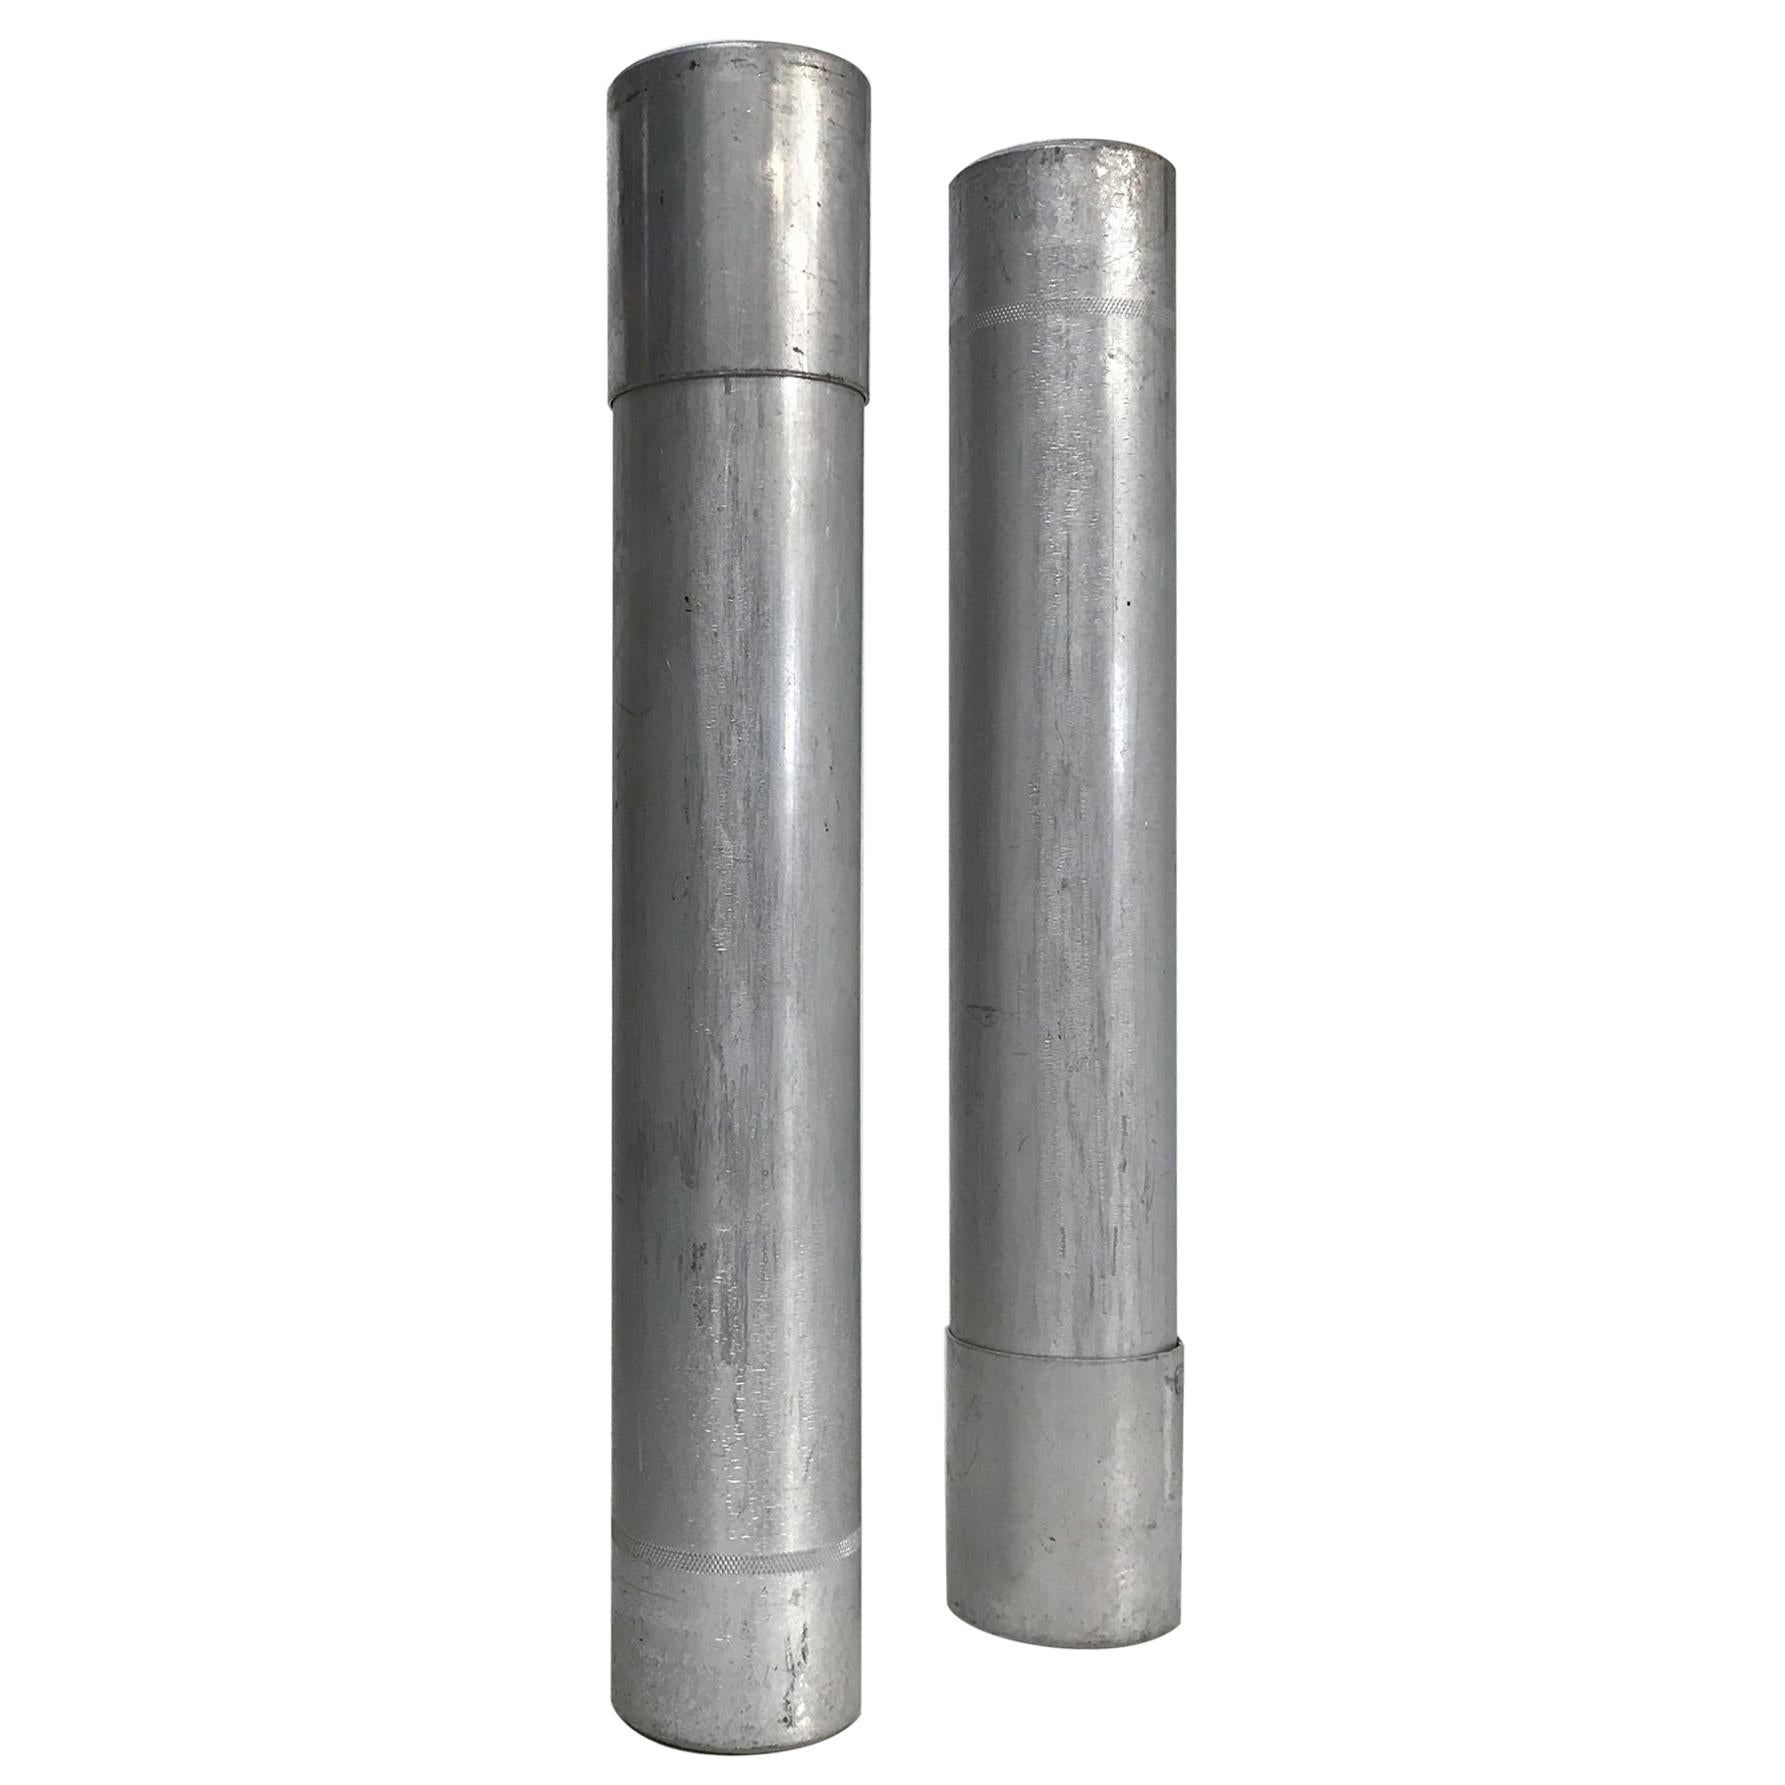 Modern Industrial Salvaged Architecture Set of Two Aluminum Tubes 1970s